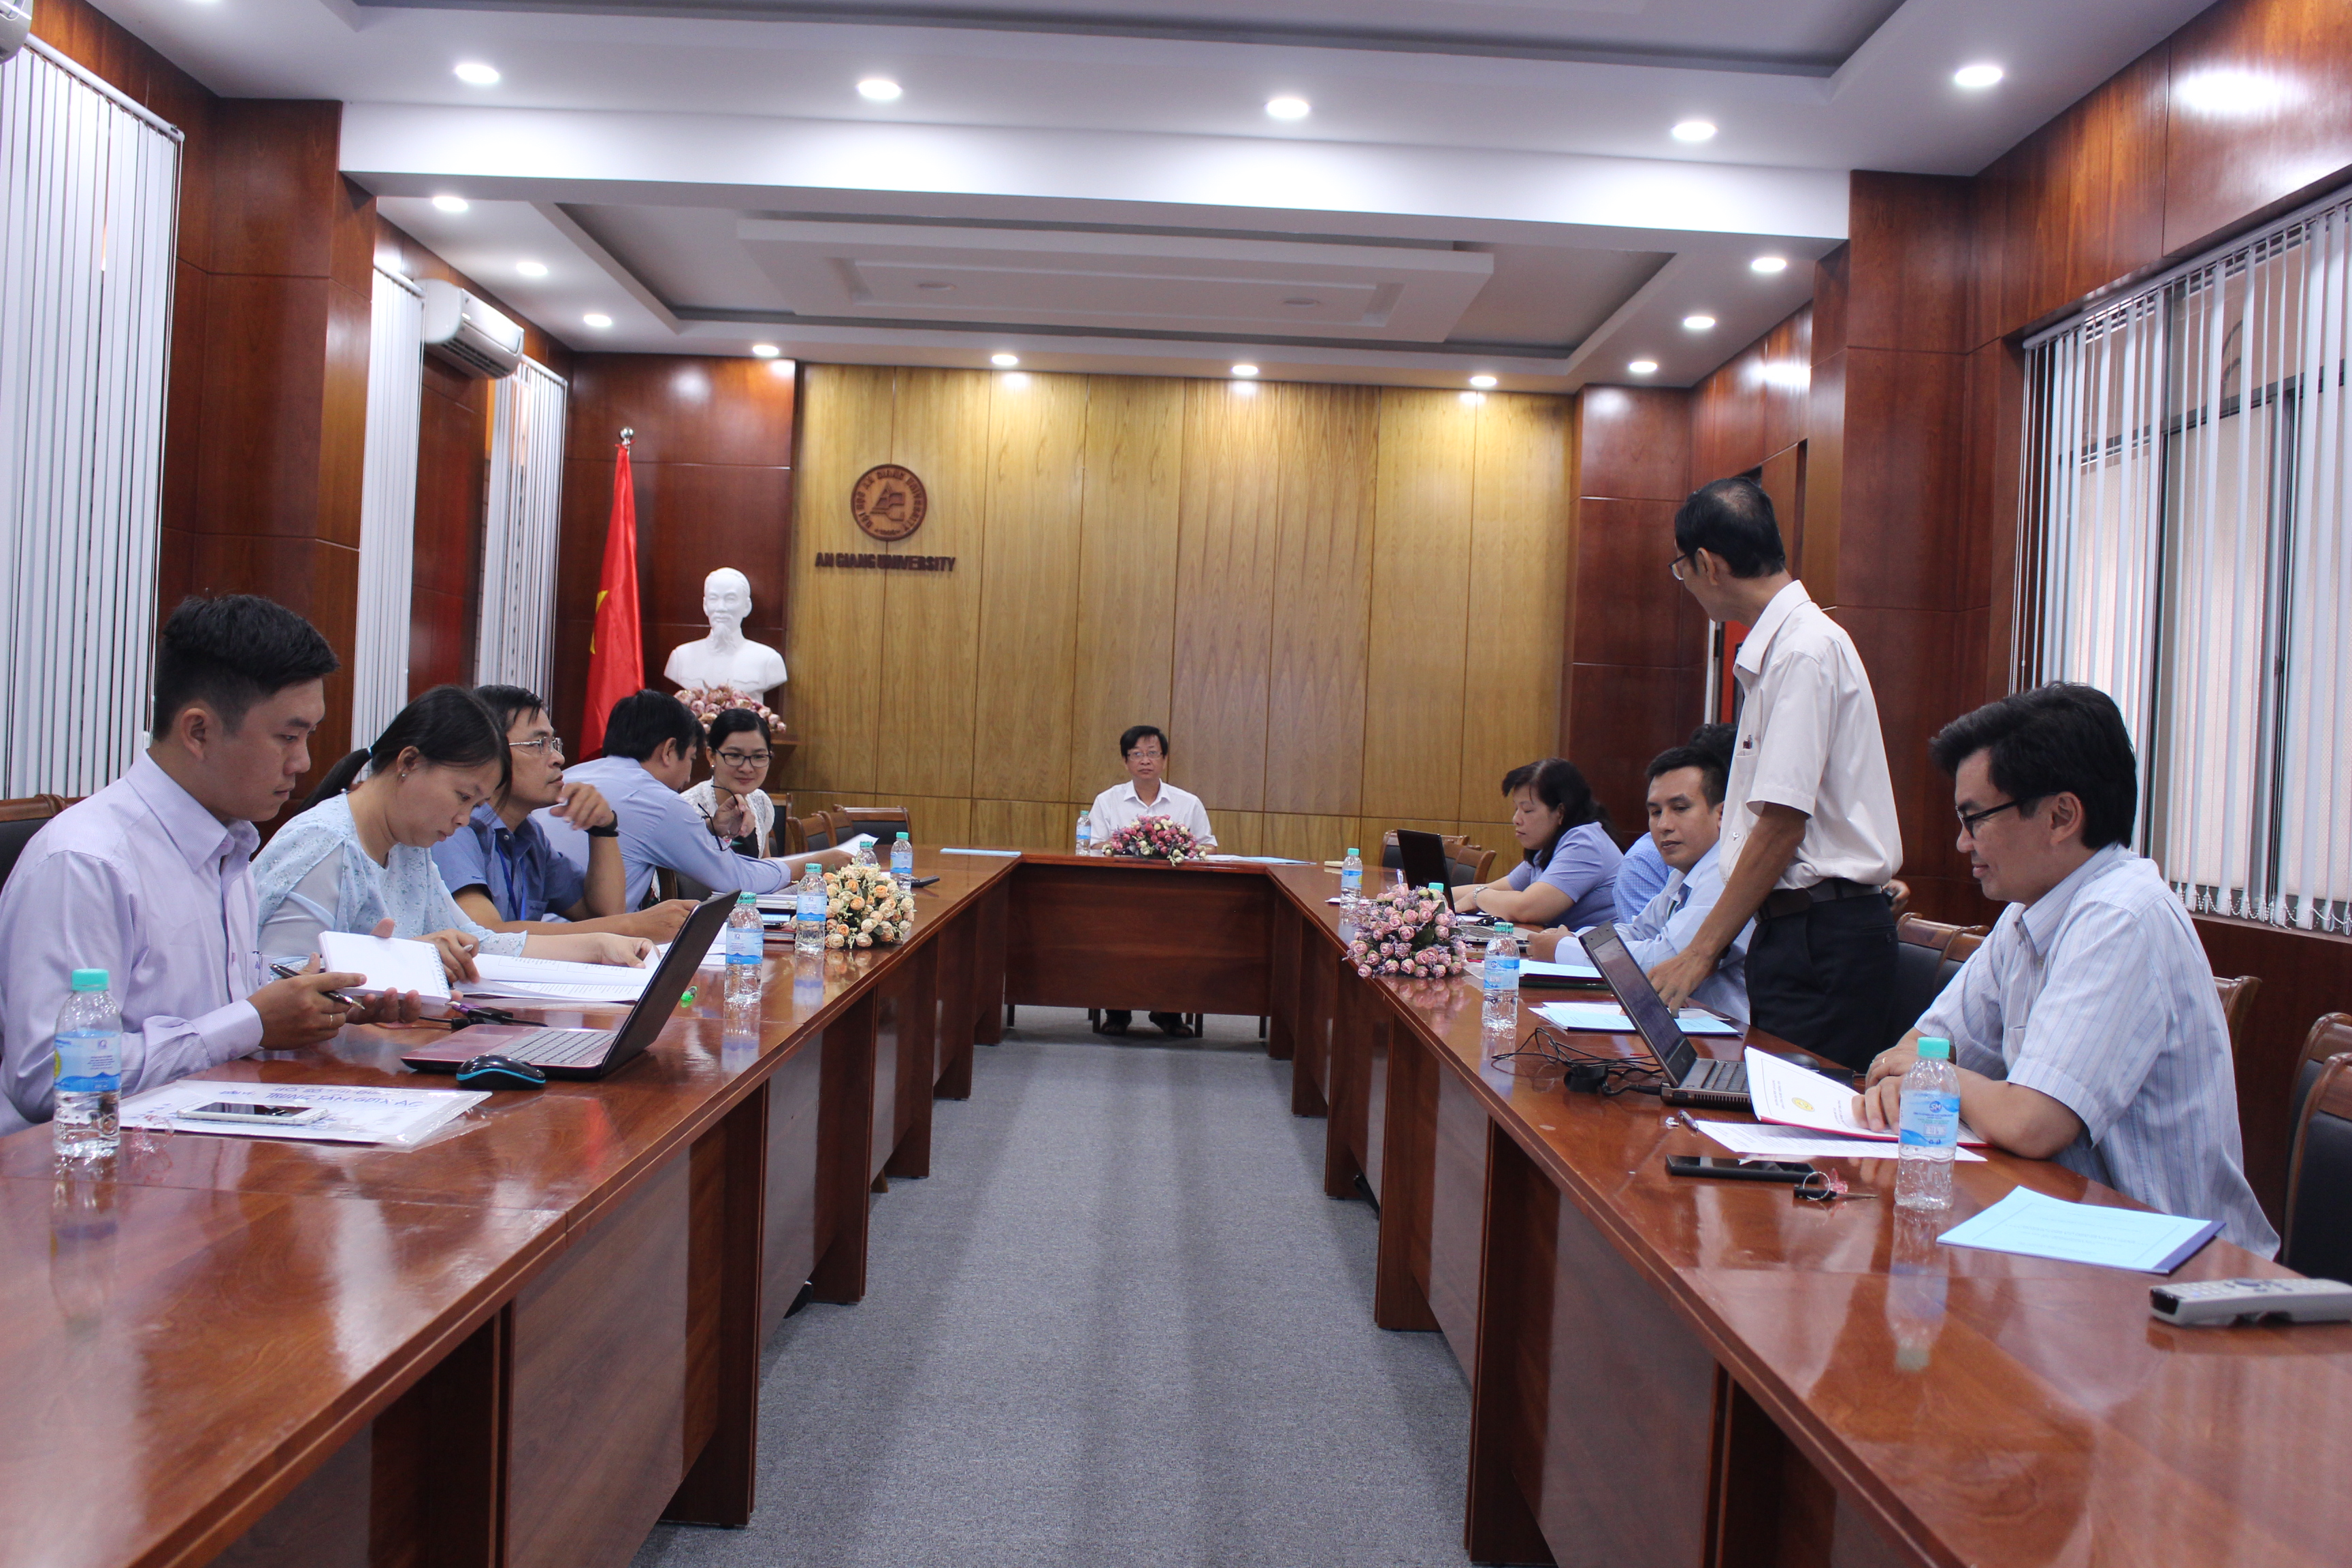 Mr. Huynh Phuoc Hai presented the project proposal to the Committee